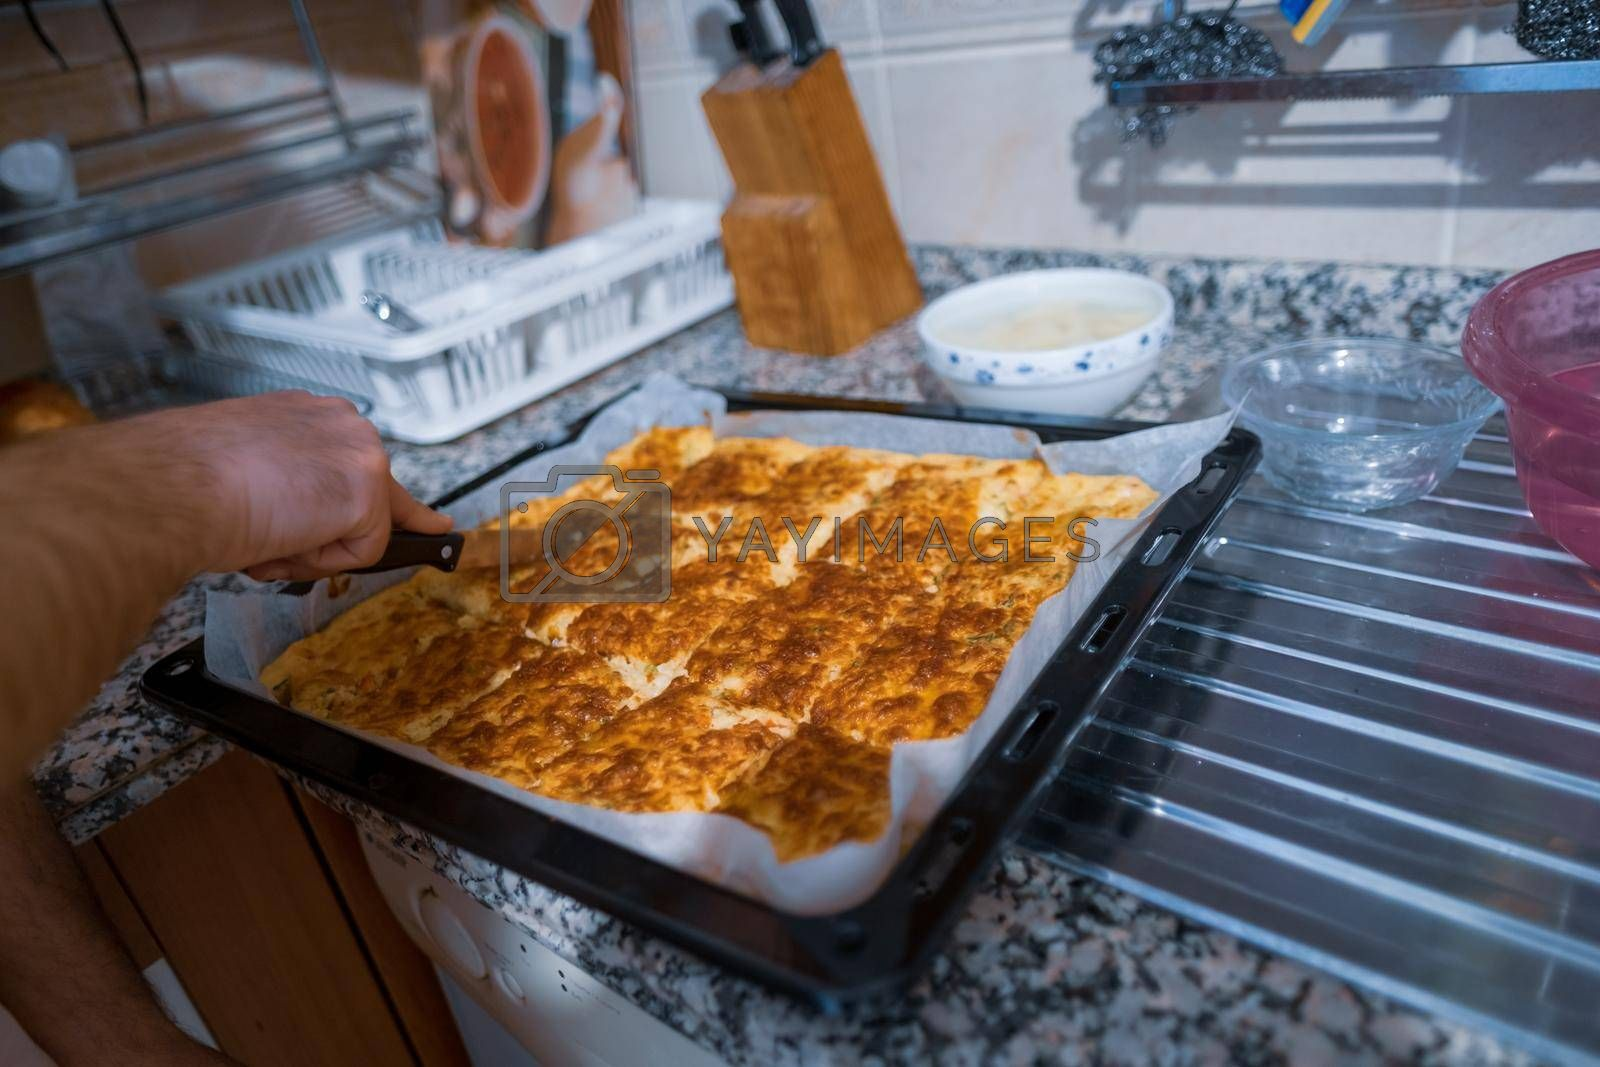 hands of a male person slicing borek in his kitchen